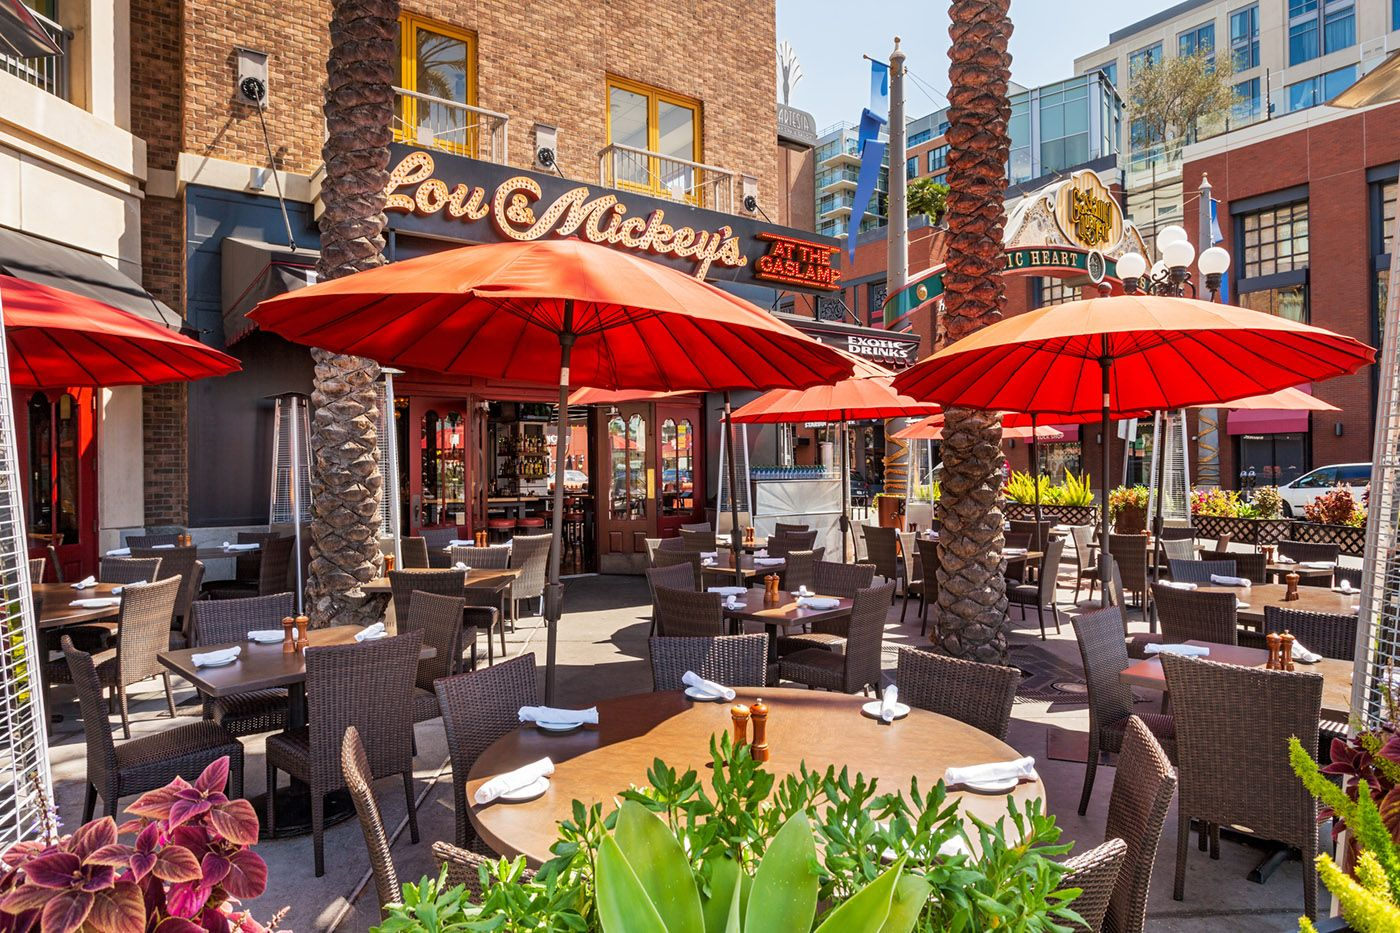 Lou mickey s at the gaslamp san diego patio sign